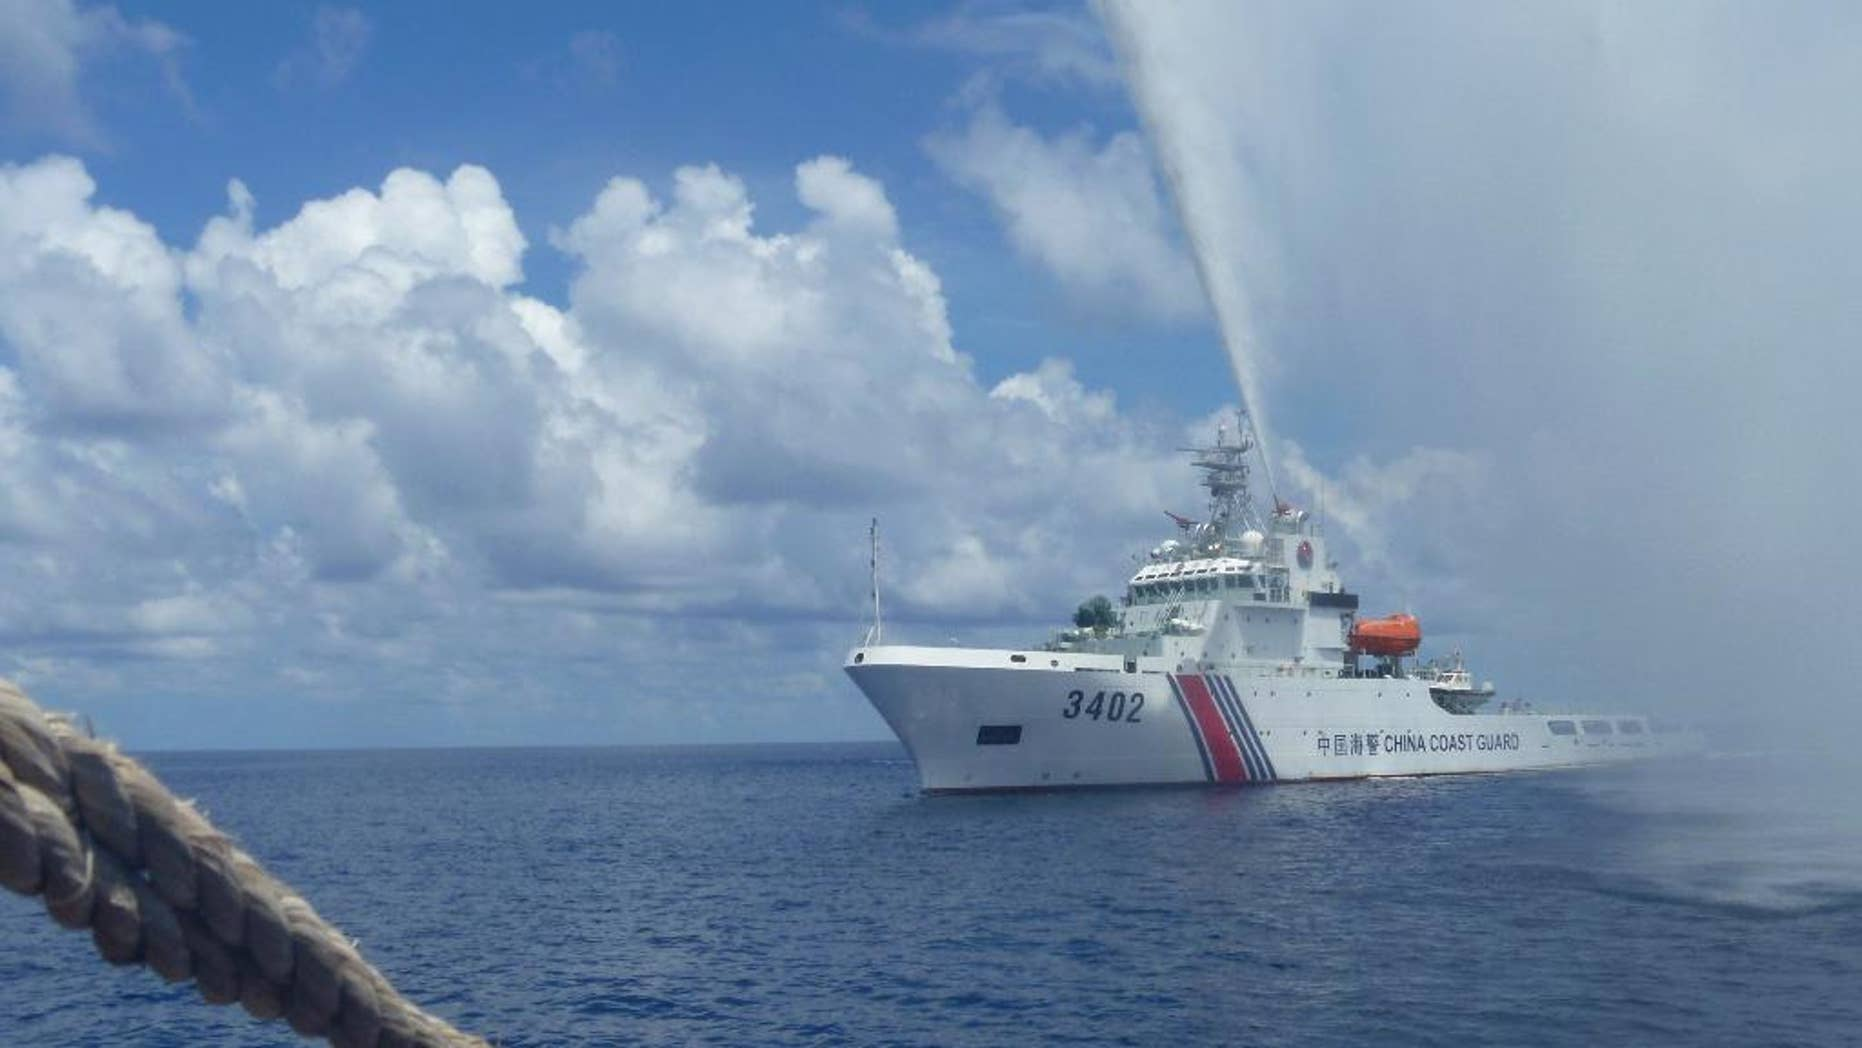 FILE - In this Sept. 23, 2015, file photo, Chinese Coast Guard members approach Filipino fishermen as they confront each other off Scarborough Shoal in the South China Sea, also called the West Philippine Sea. The Philippines' new president said Tuesday July 5, 2016, that Manila is ready to talk to China, not go to war, if an arbitration tribunal rules in its favor in a case it brought against Beijing's claims in the South China Sea. (AP Photo/Renato Etac, File)